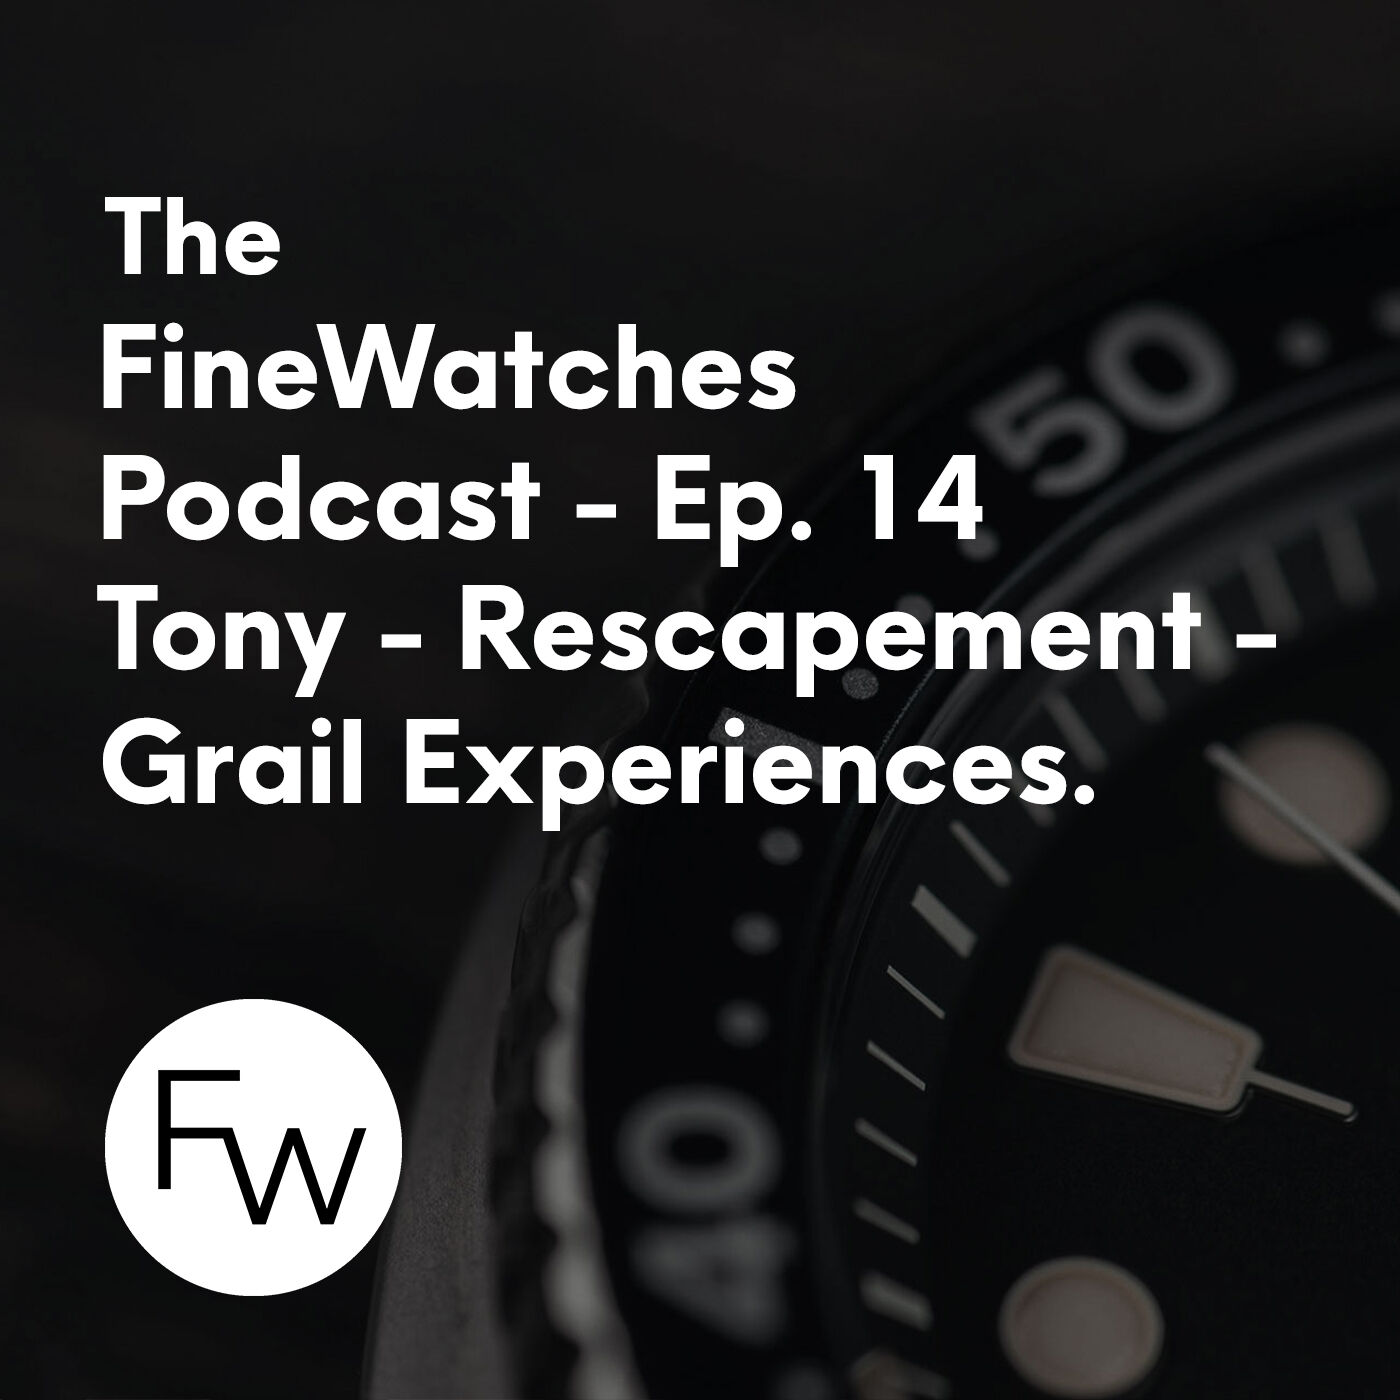 Grail Experiences - Tony From Rescapement